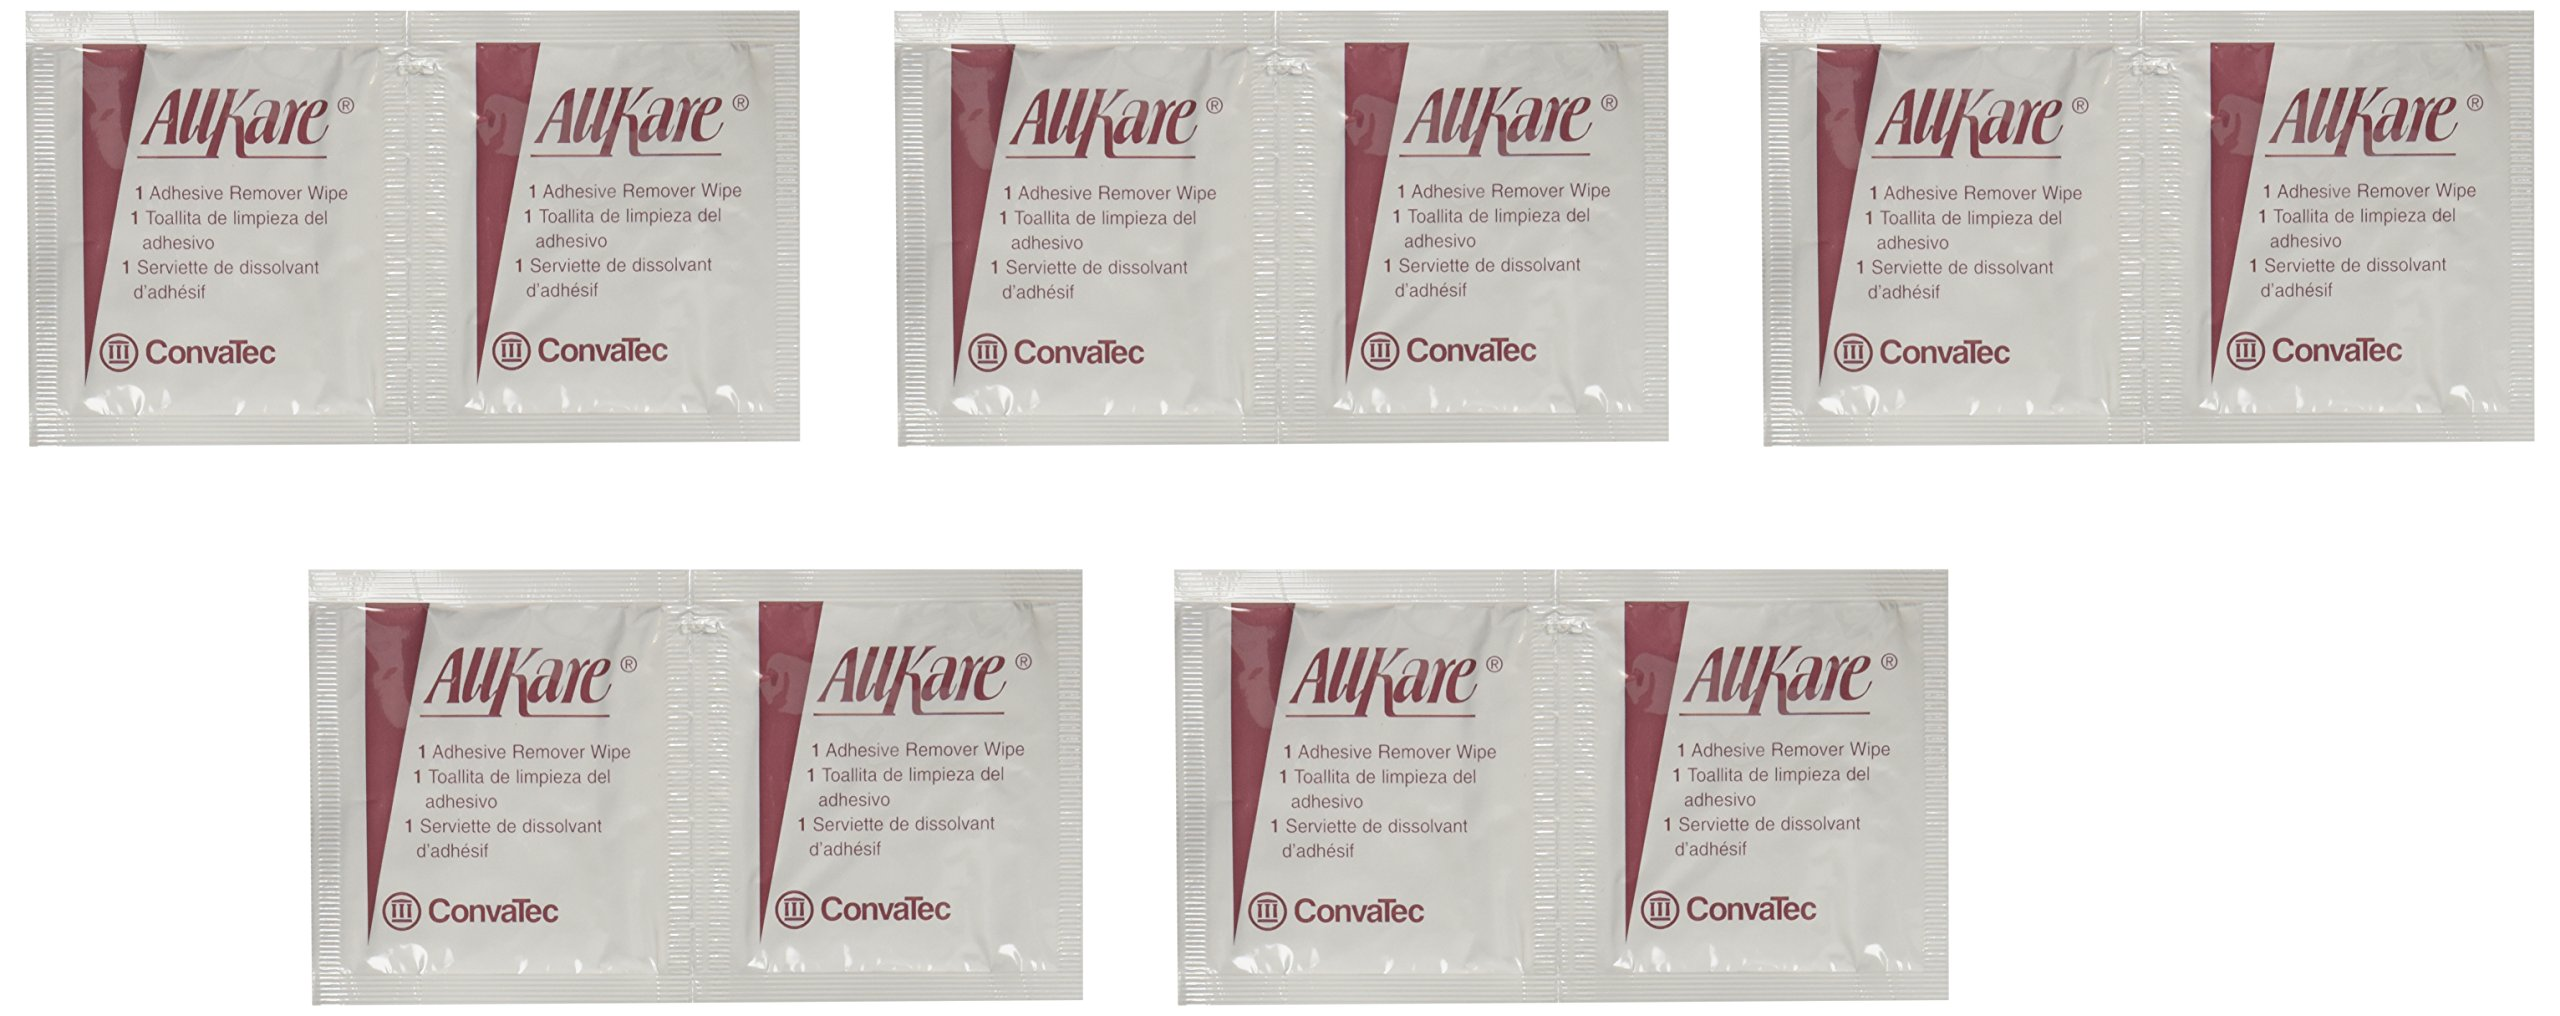 AllKare Adhesive Remover Wipe - 50 Pack product image